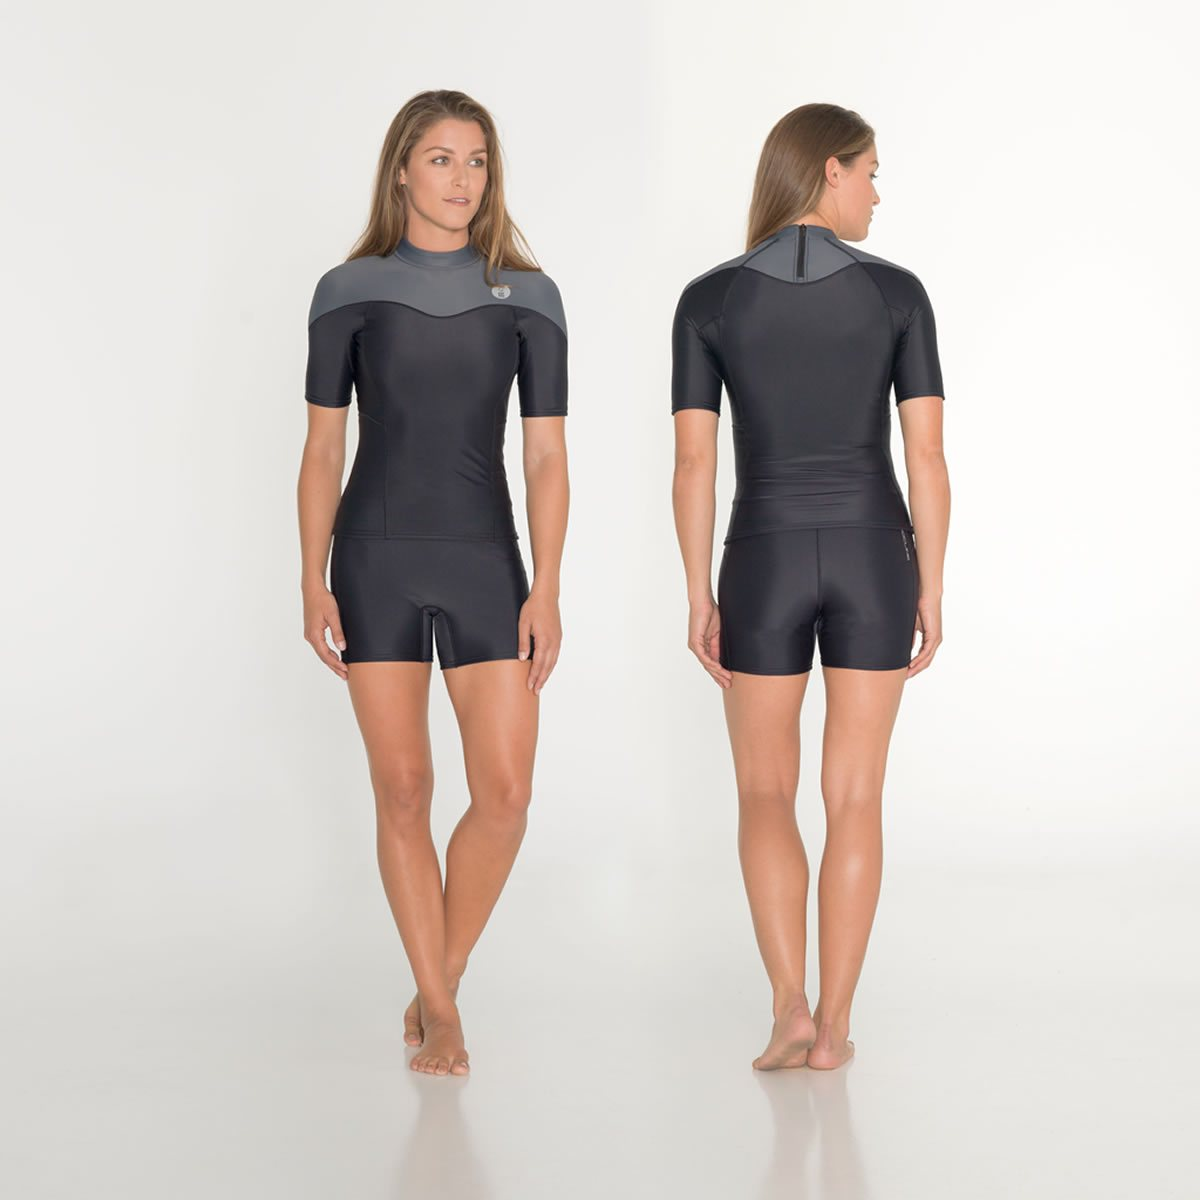 b8d0160bf67a Fourth Element Thermocline Short Sleeve Top - Womens | Oyster Diving ...